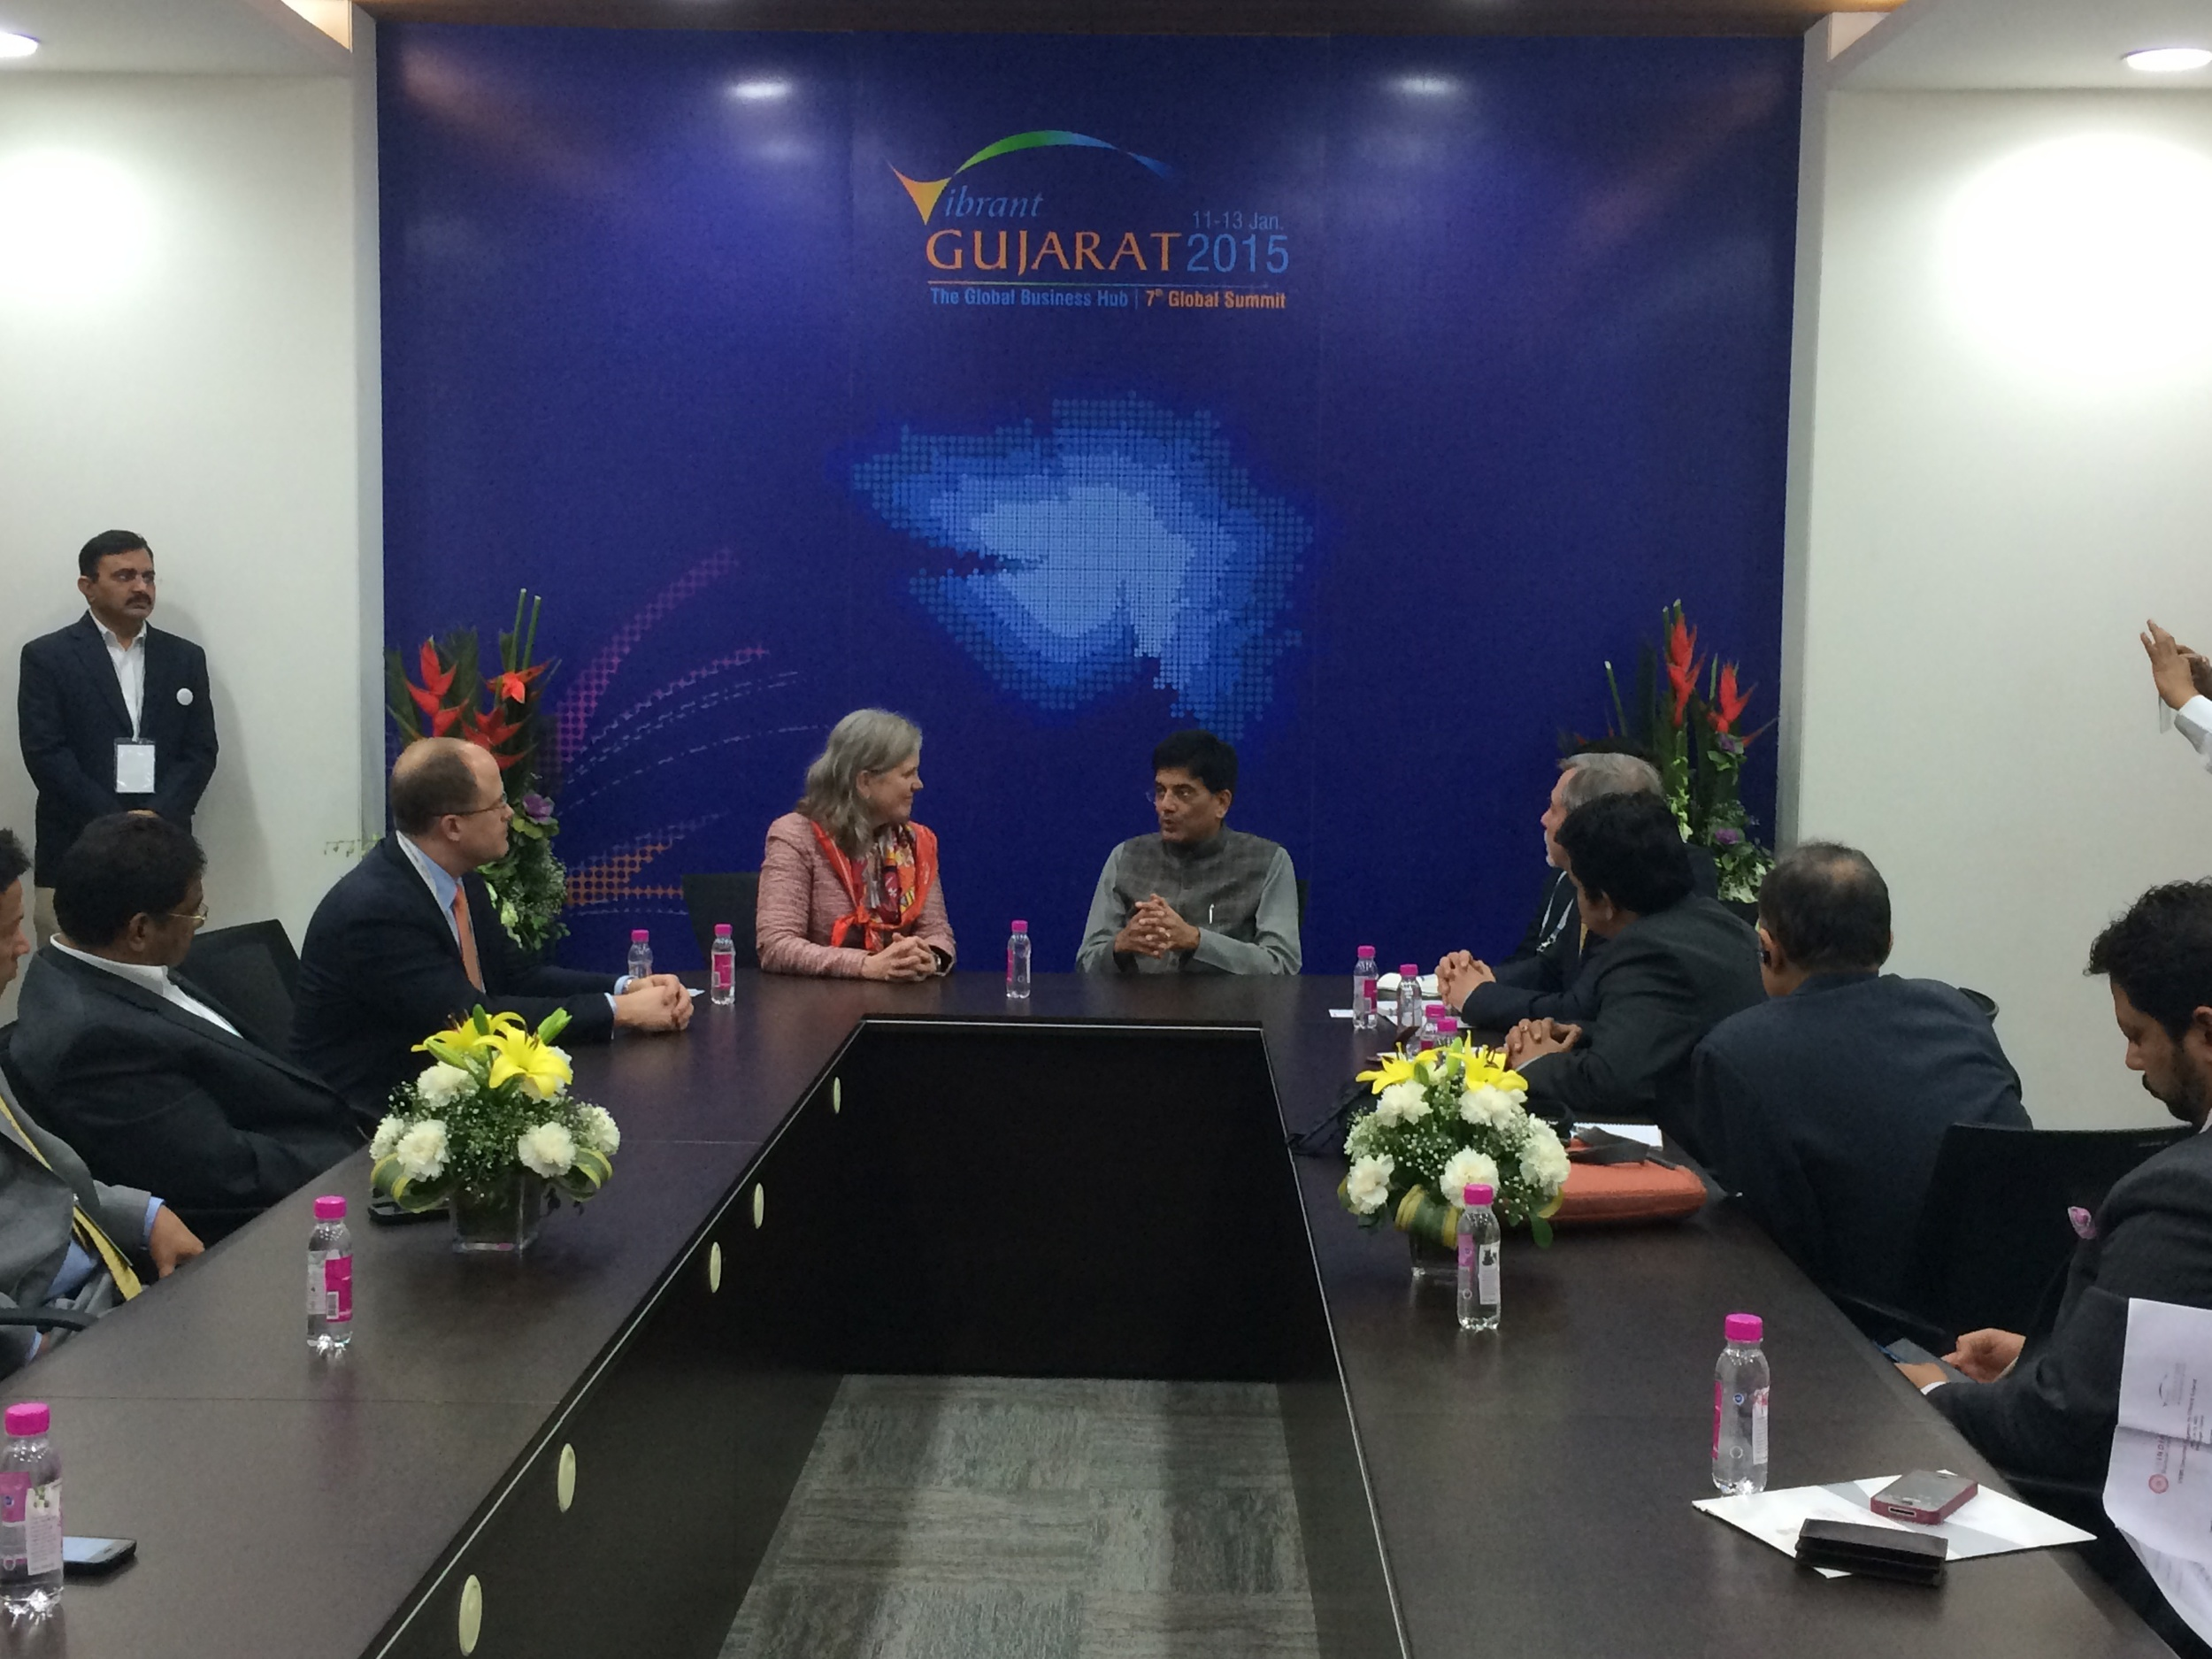 The US India Business Council Delegation with Mr. Piyush Goyal, Honorable Minister of Renewal Energy, Government of India.